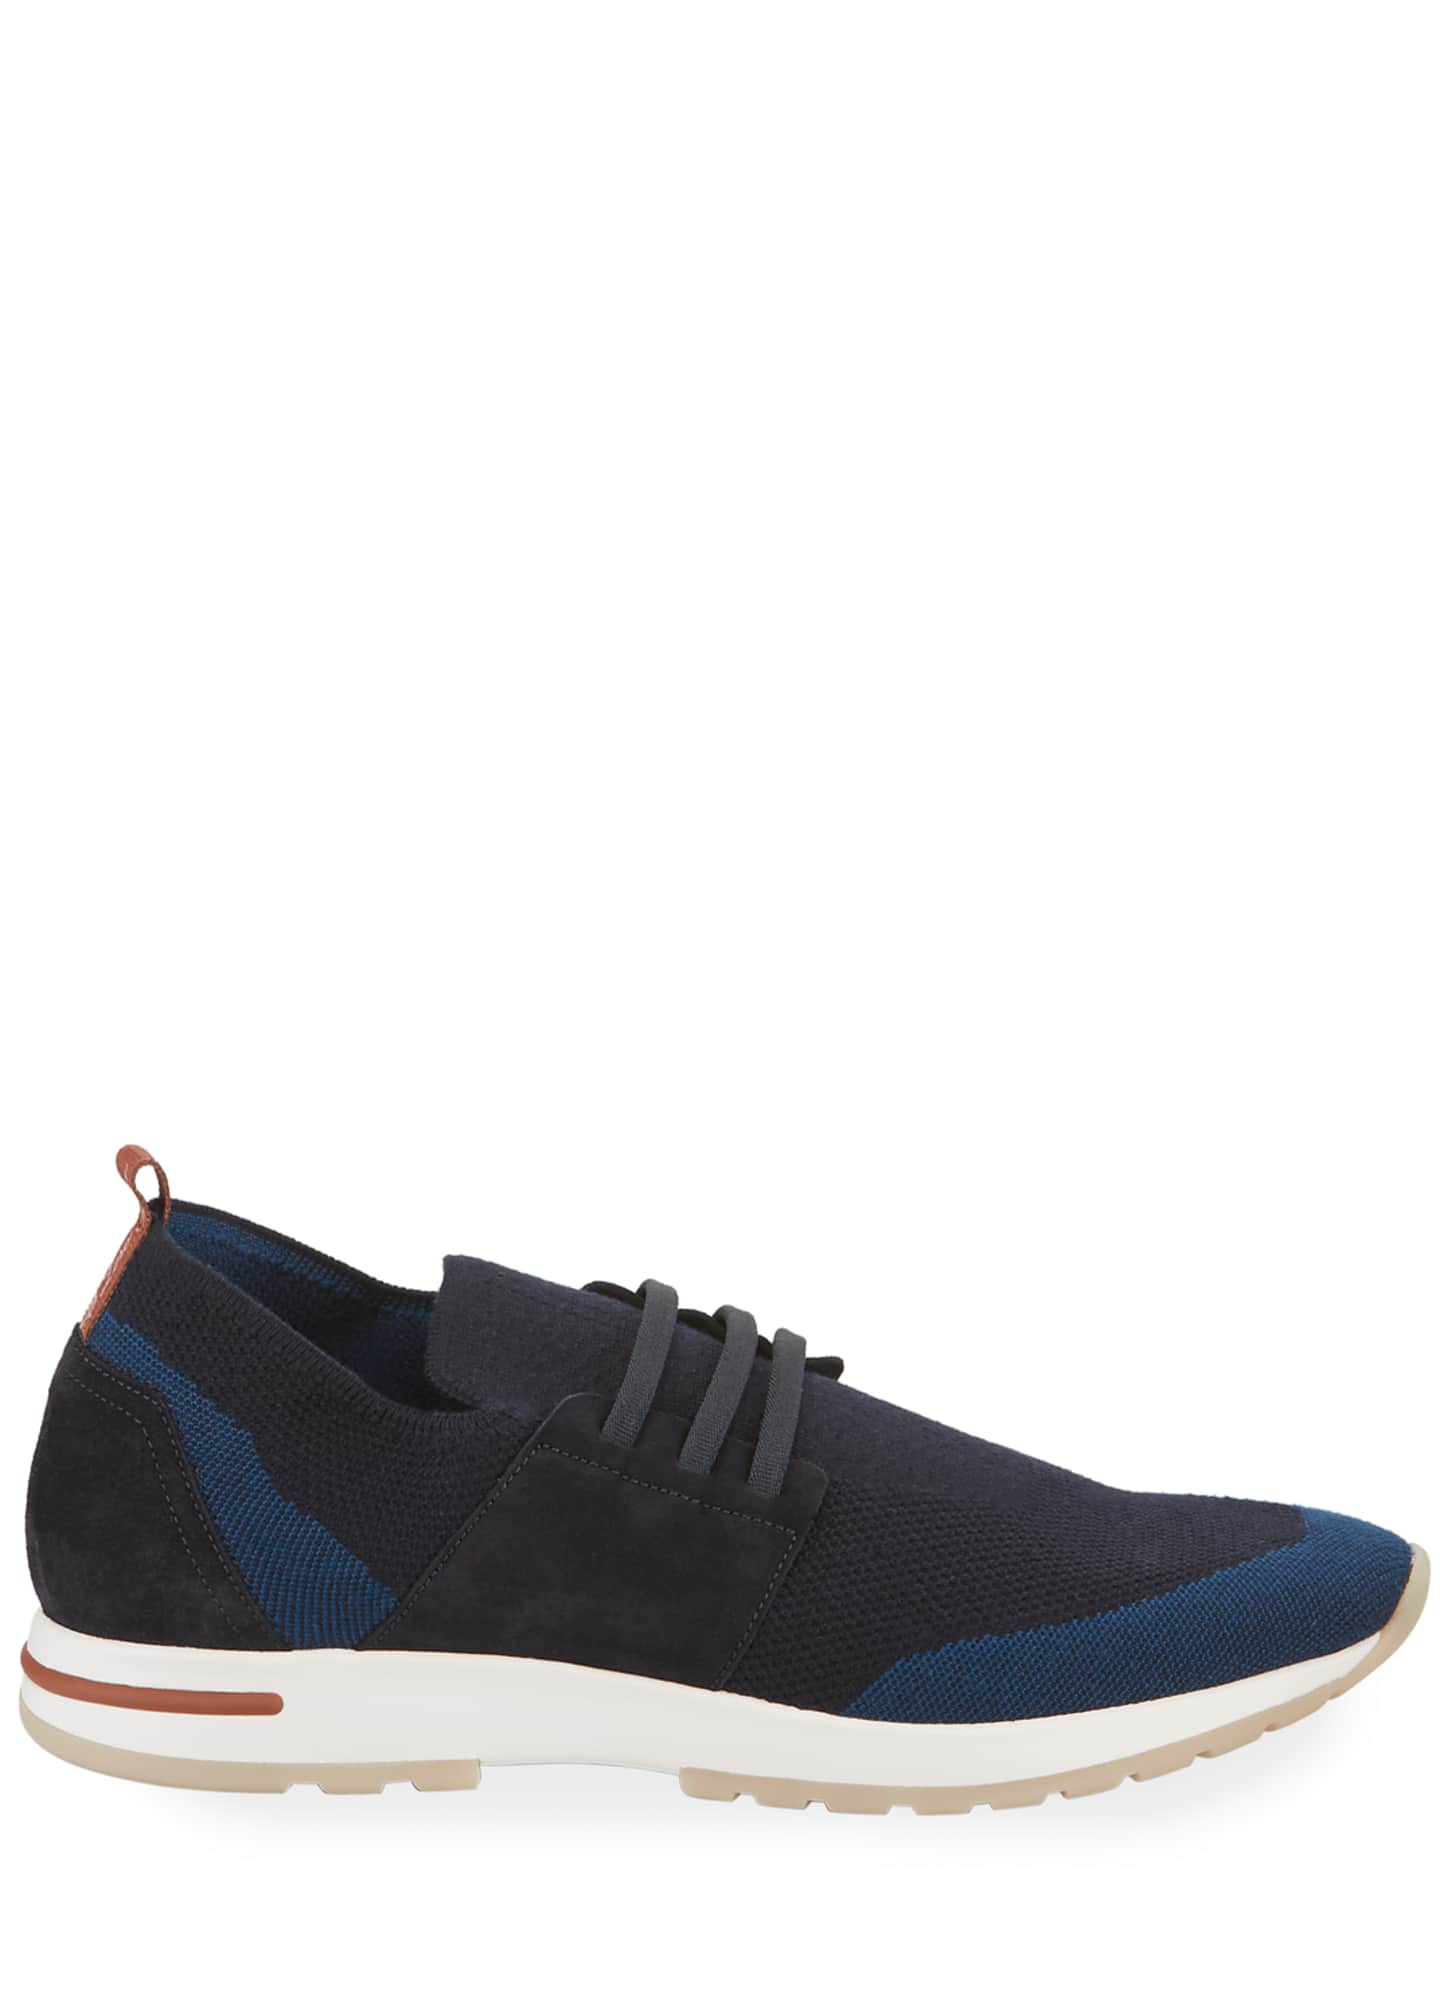 Image 3 of 4: Men's 360 Flexy Walk Knit Sneakers